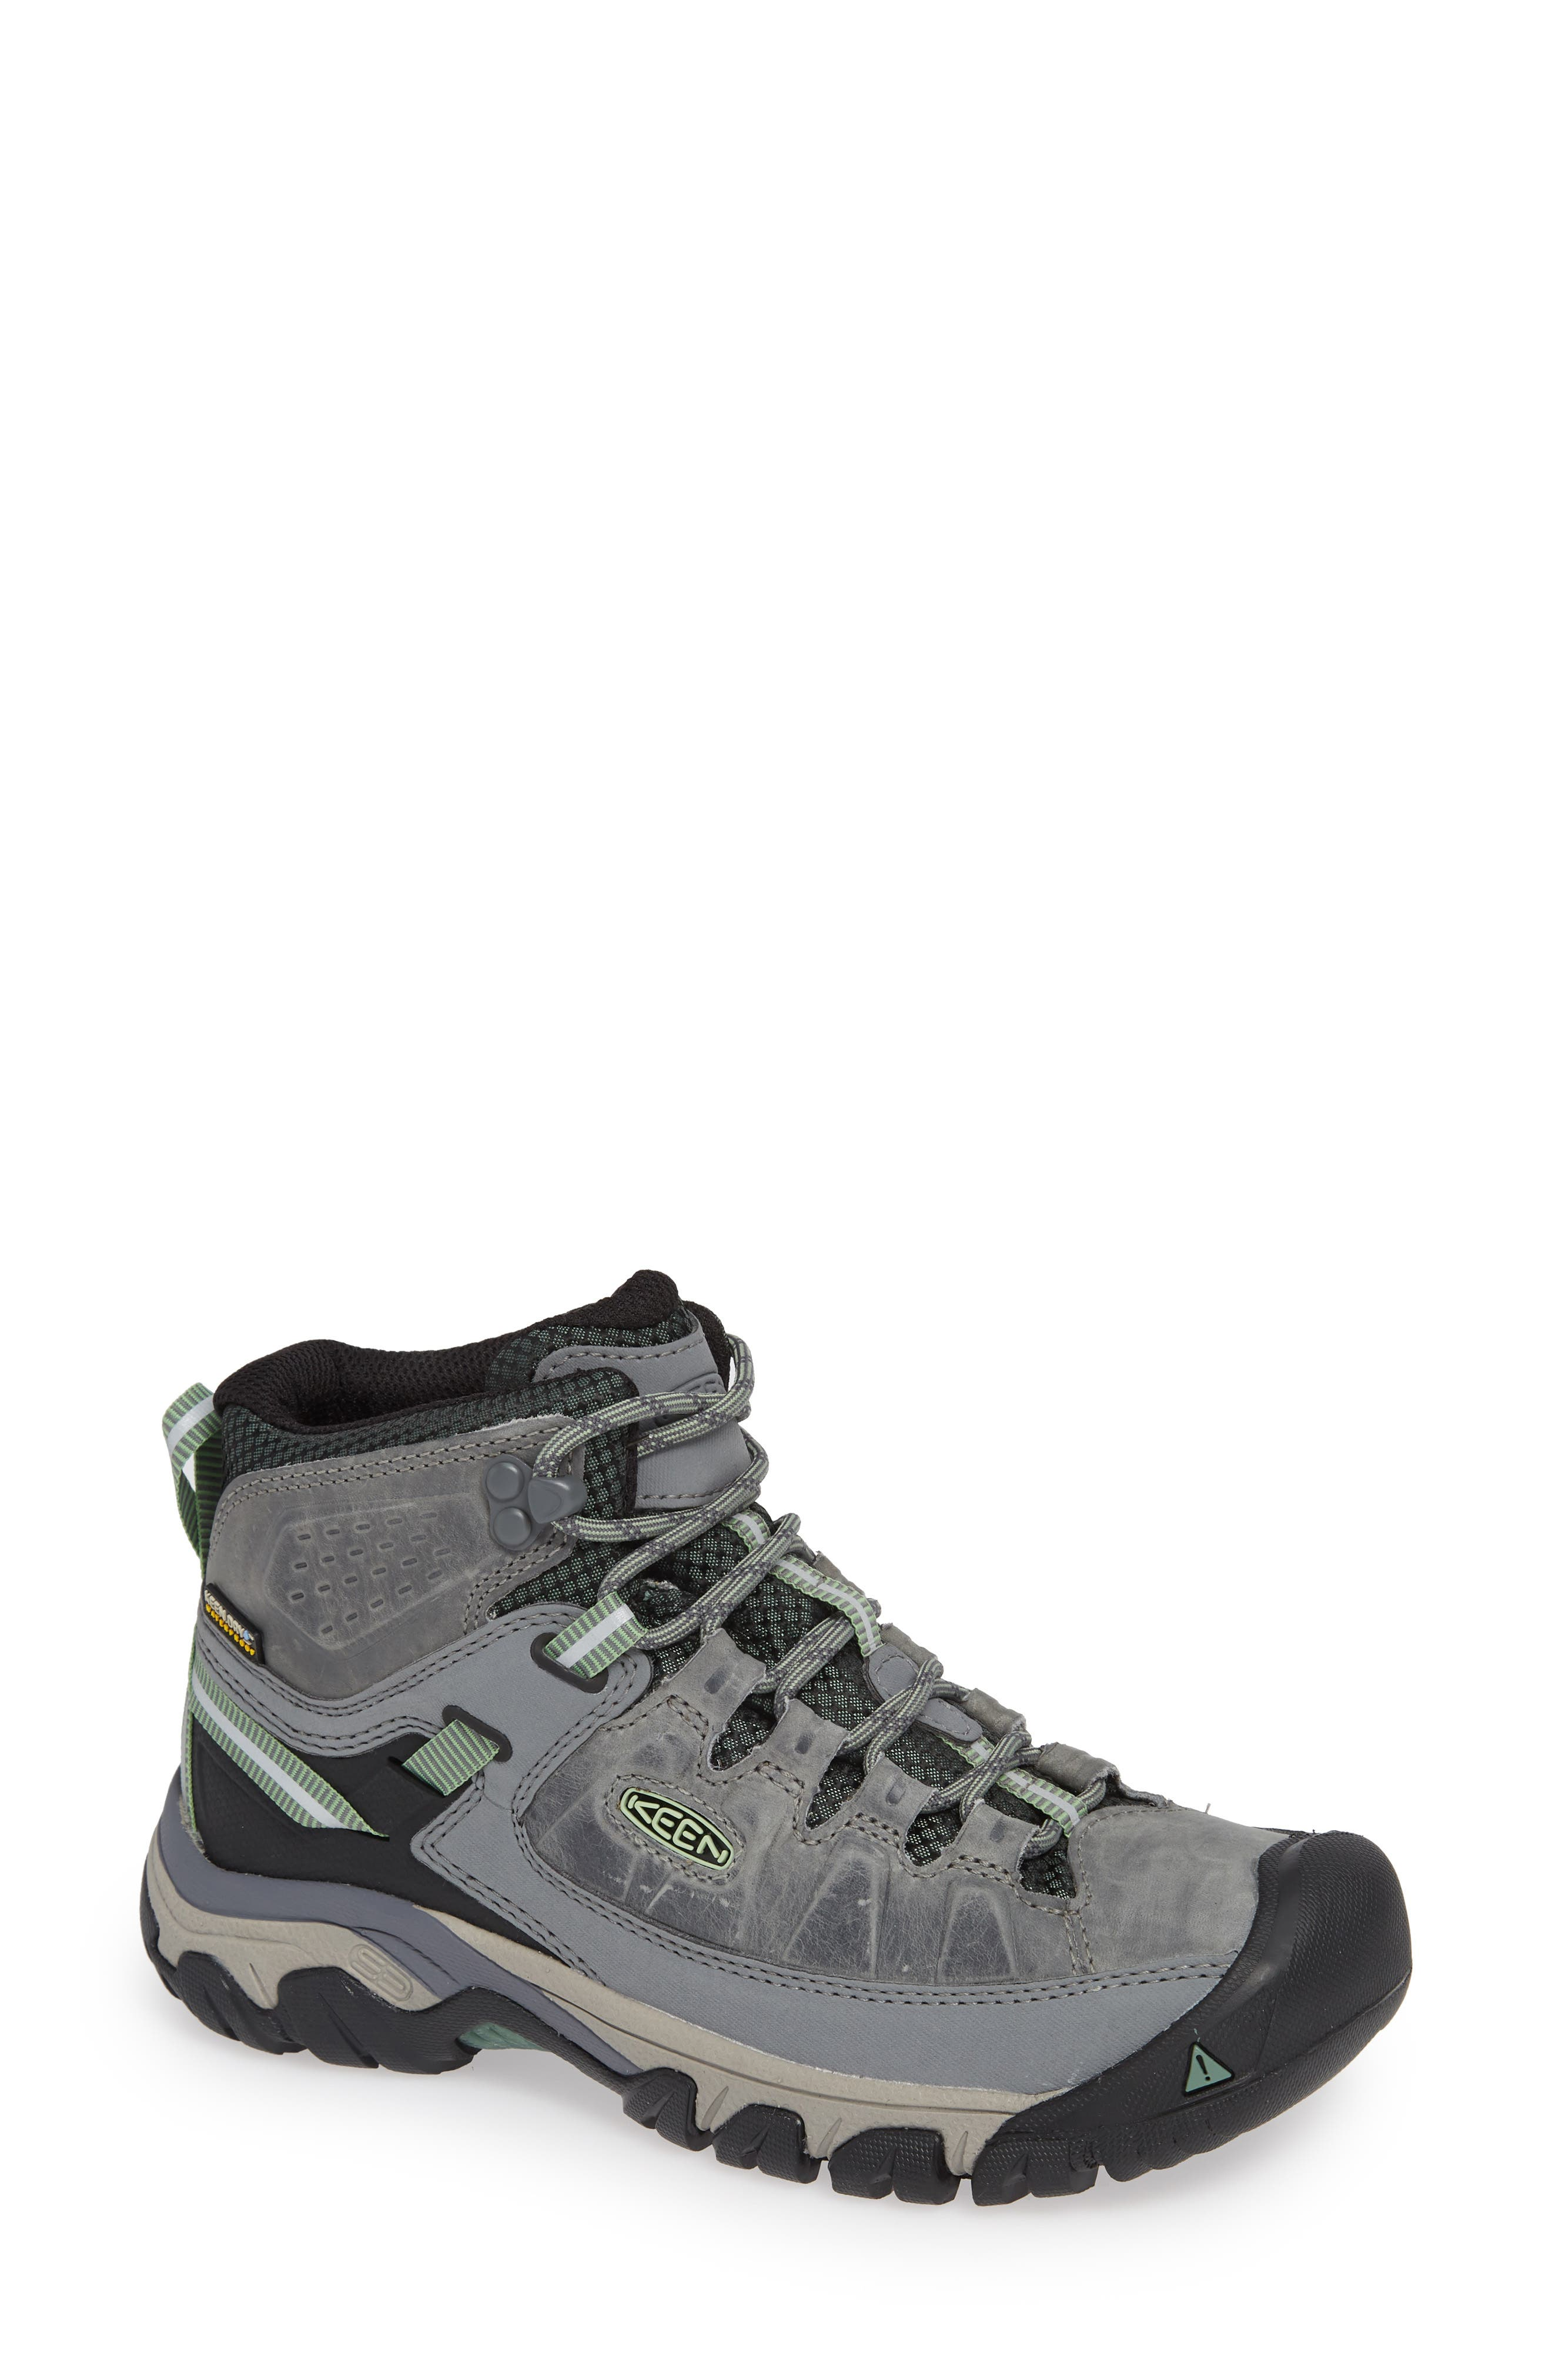 Targhee III Mid Waterproof Hiking Boot,                             Main thumbnail 1, color,                             BLEACHER/ DUCK GREEN LEATHER